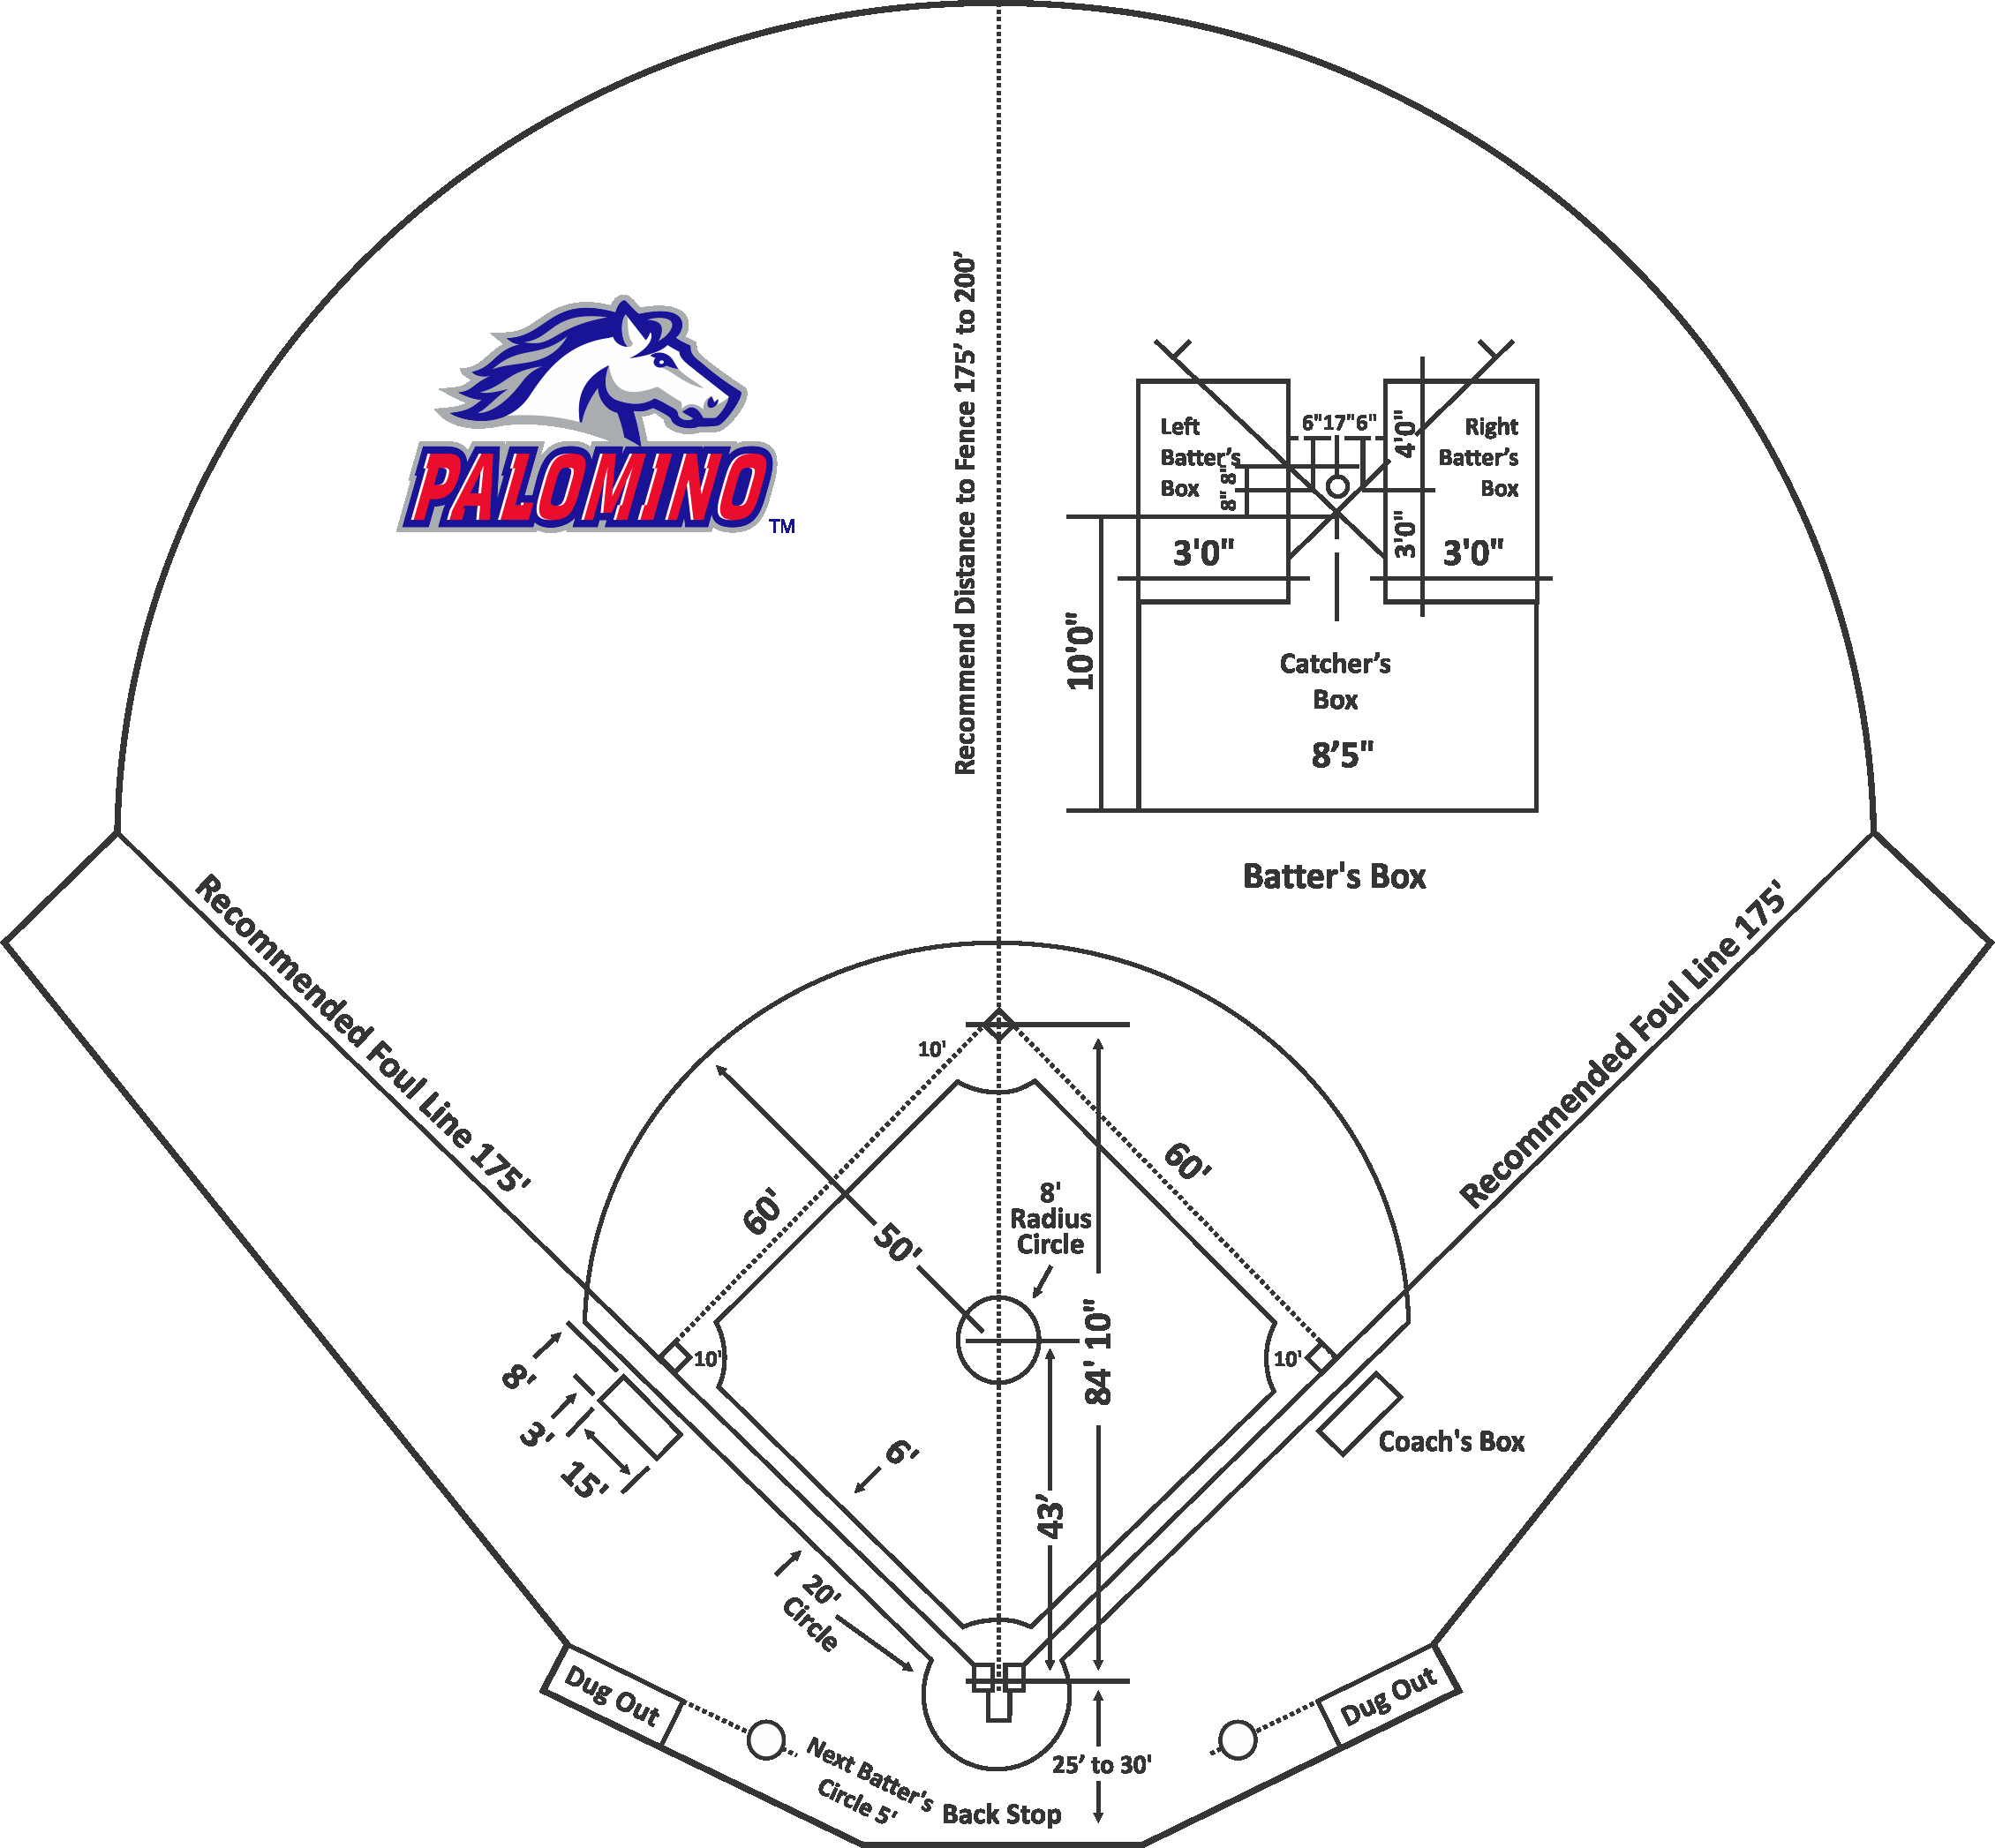 Baseball Field Diagram Field Diagram Travelselect Palomino 18 Softball Pony Baseball